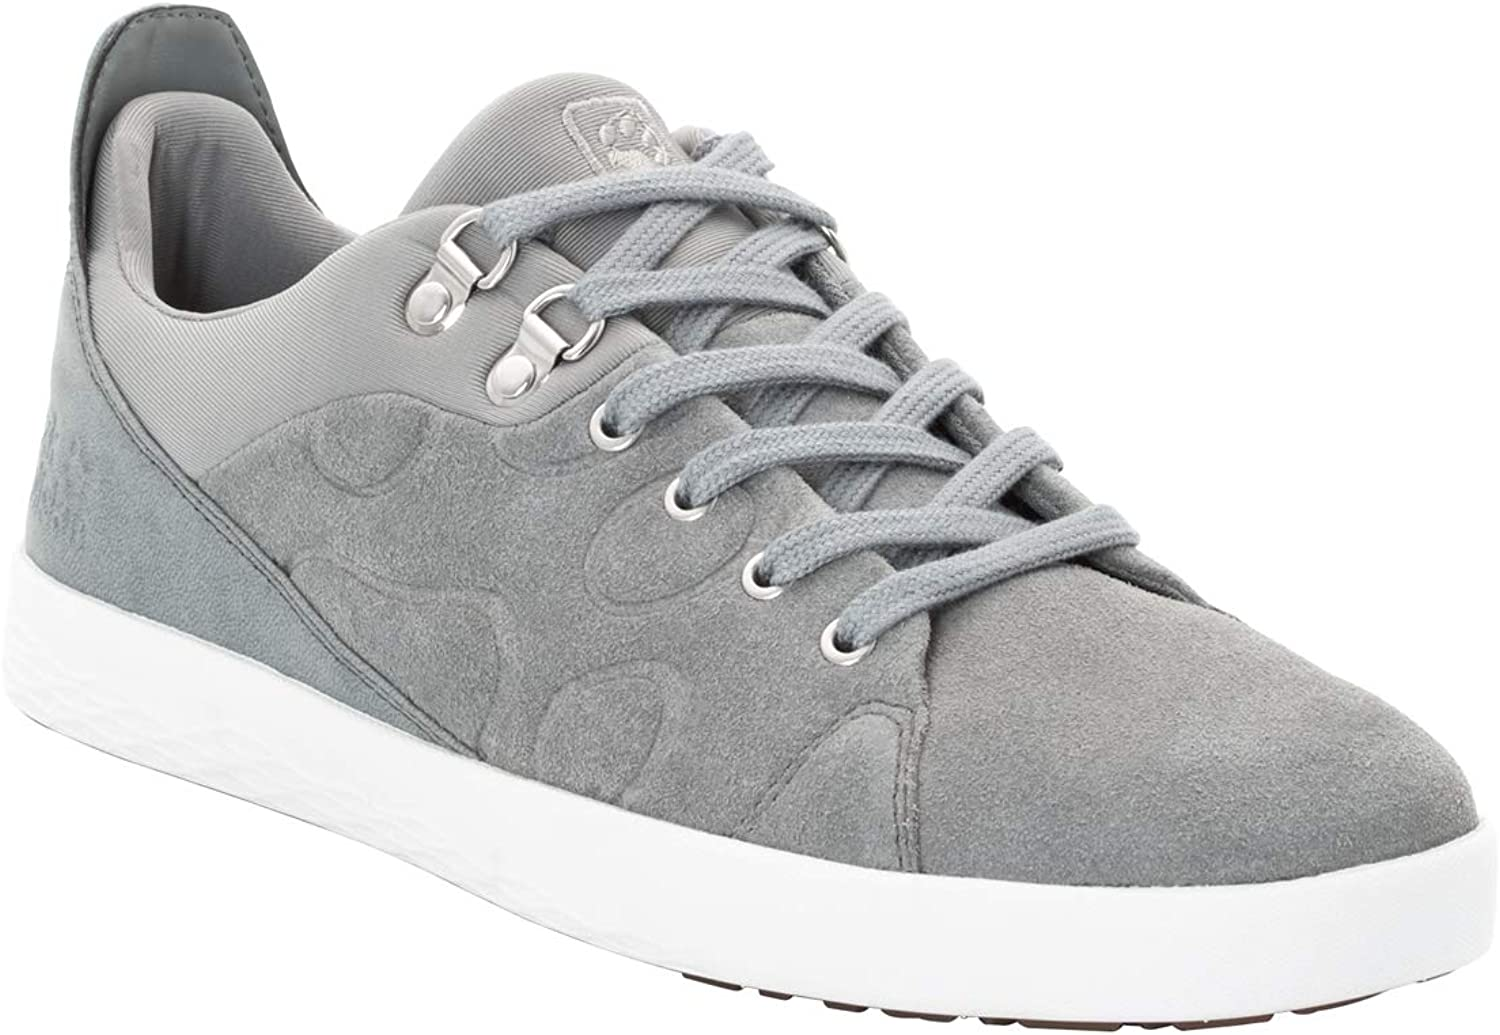 Jack Wolfskin Mens Auckland Low Men's Casual Sneakers Sneaker